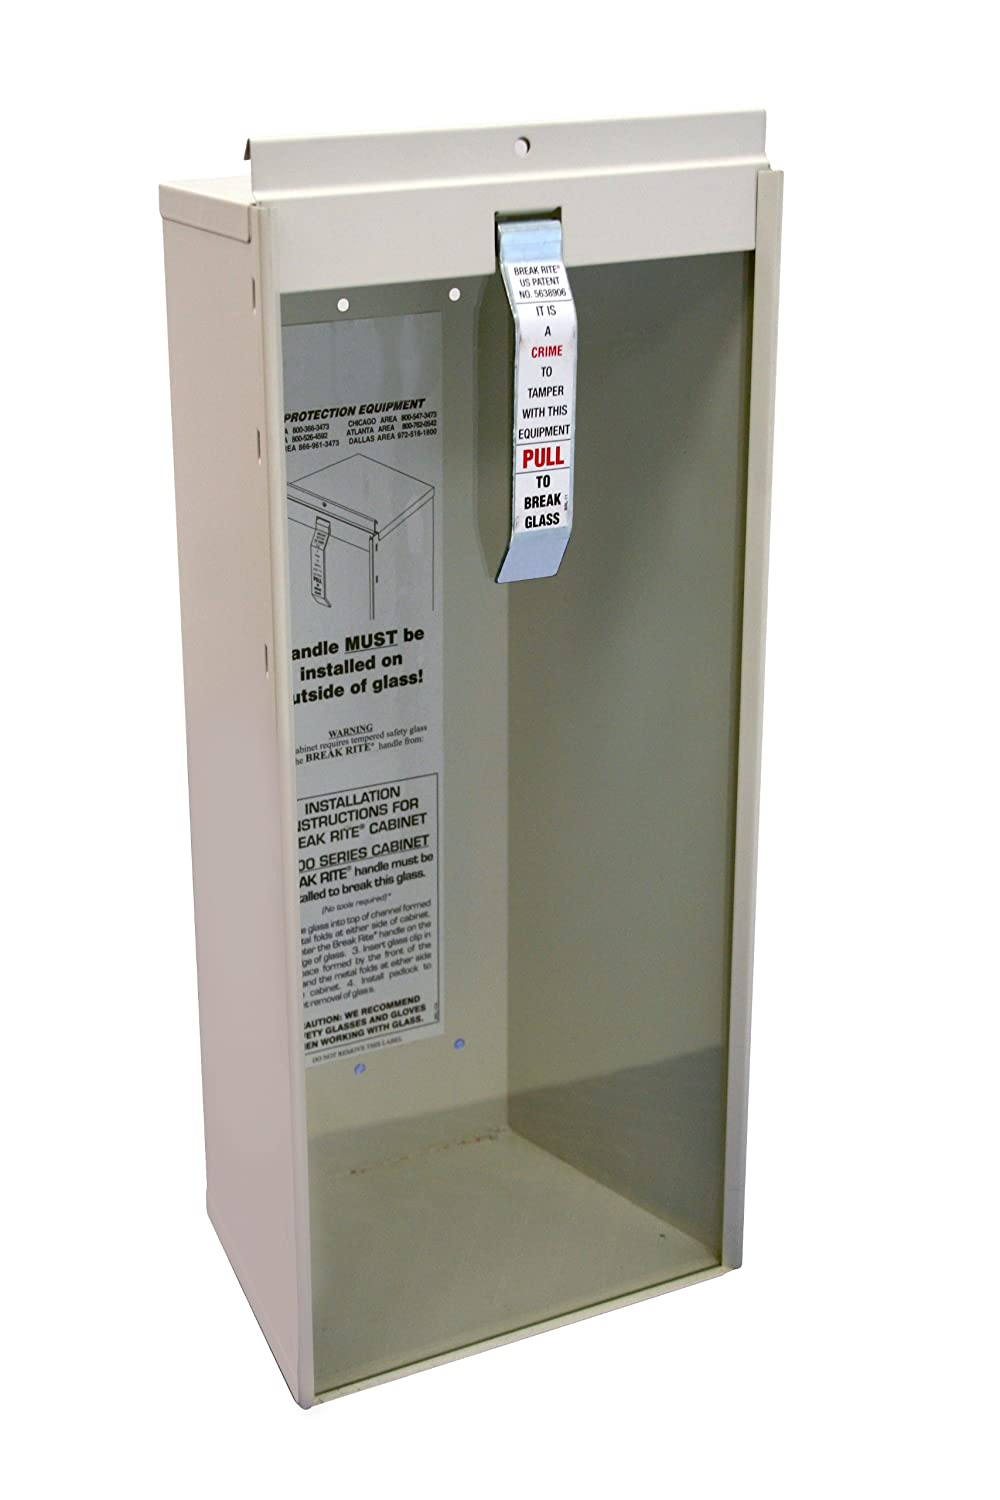 Kidde 468041 Potter Roemer Surface Mount 5 Pound Fire Extinguisher Cabinet